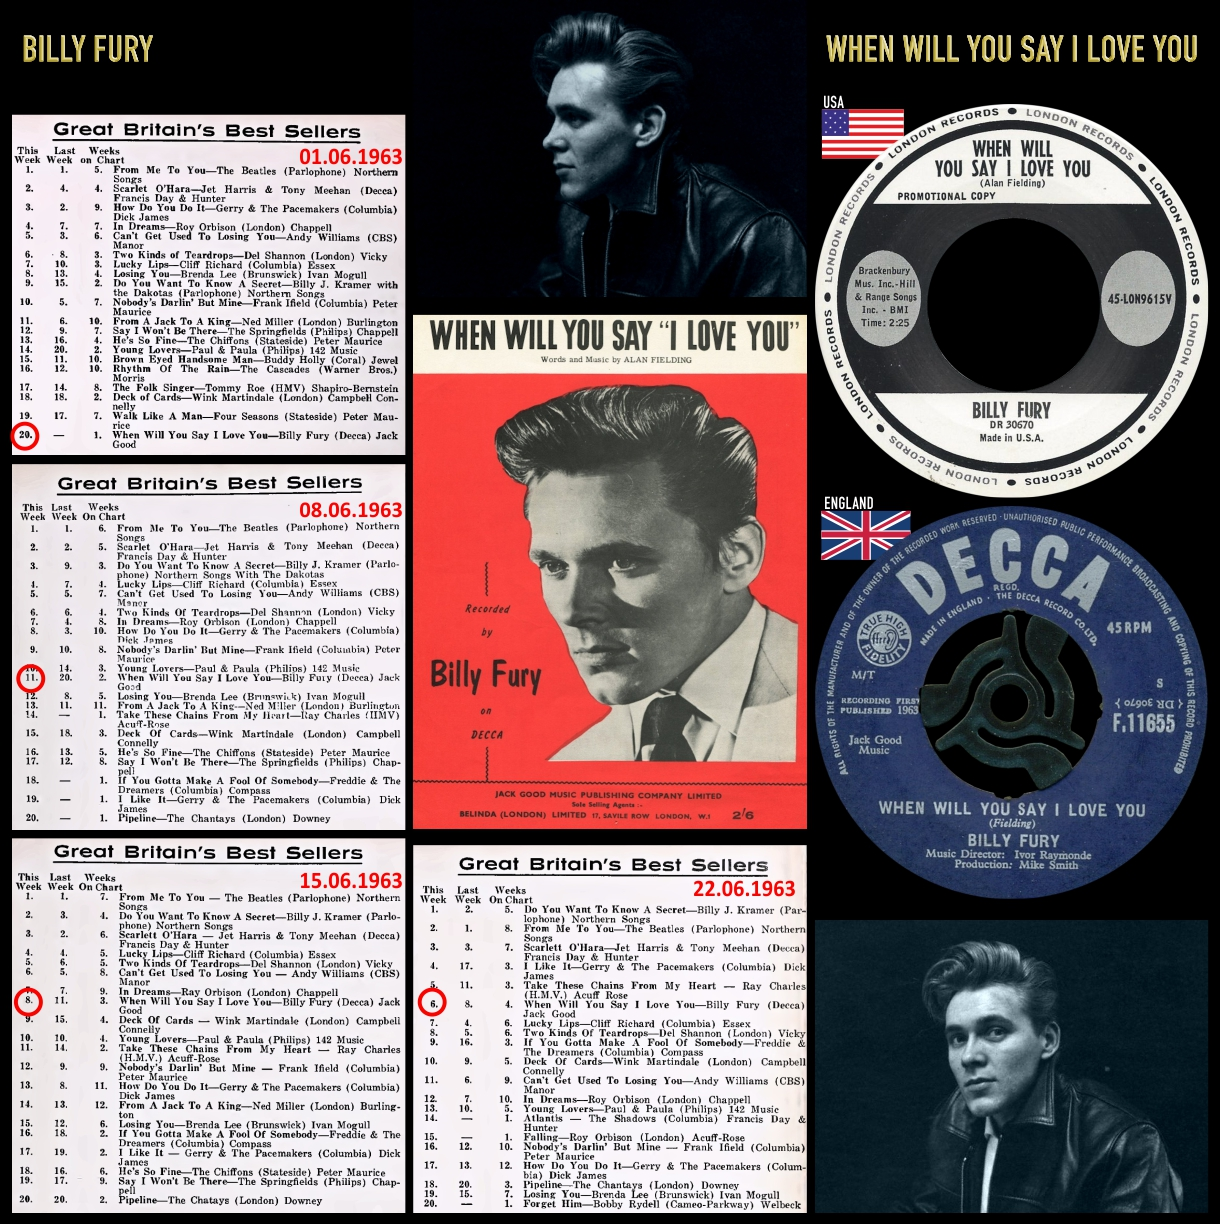 630518_Billy Fury_When Will You Say I Love You